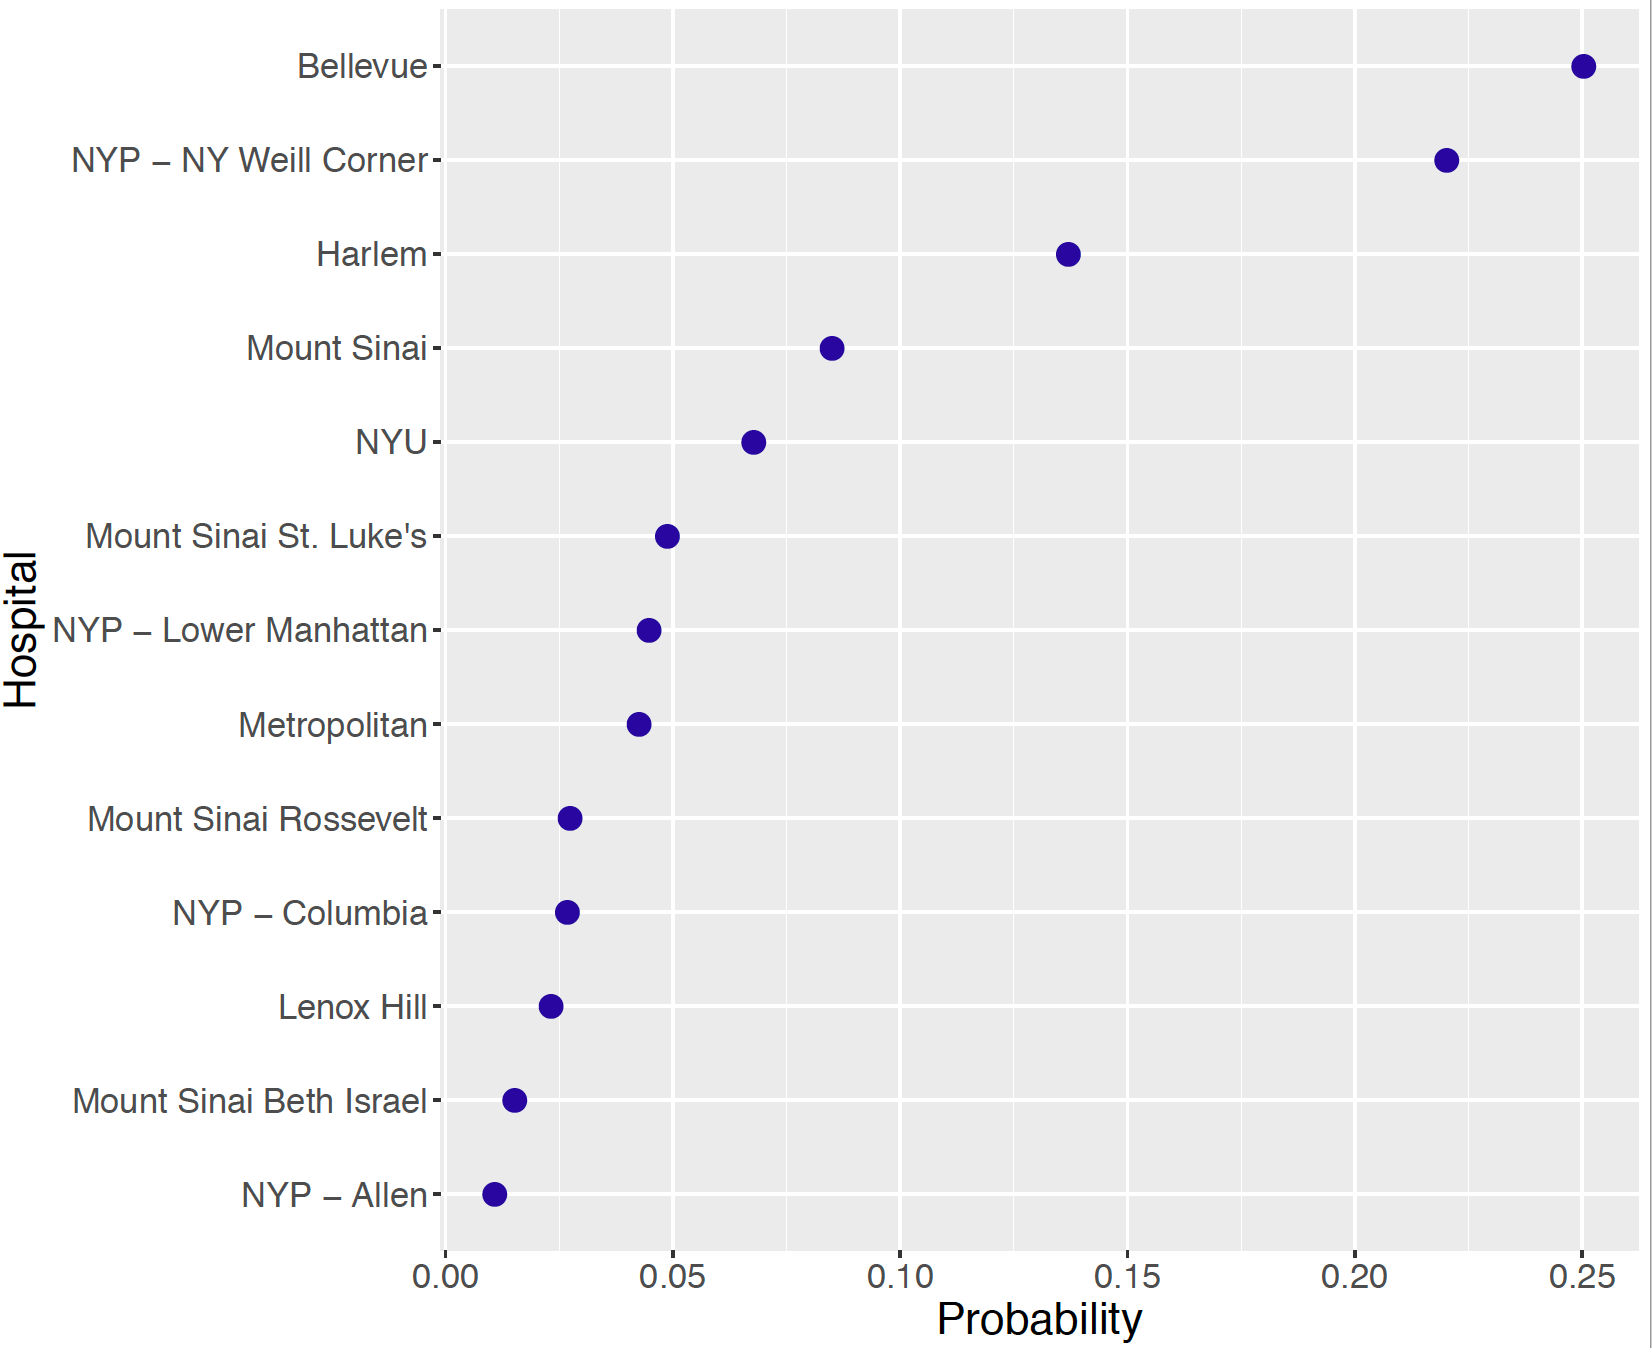 Posterior probabilities of the hospital that was ranked first.